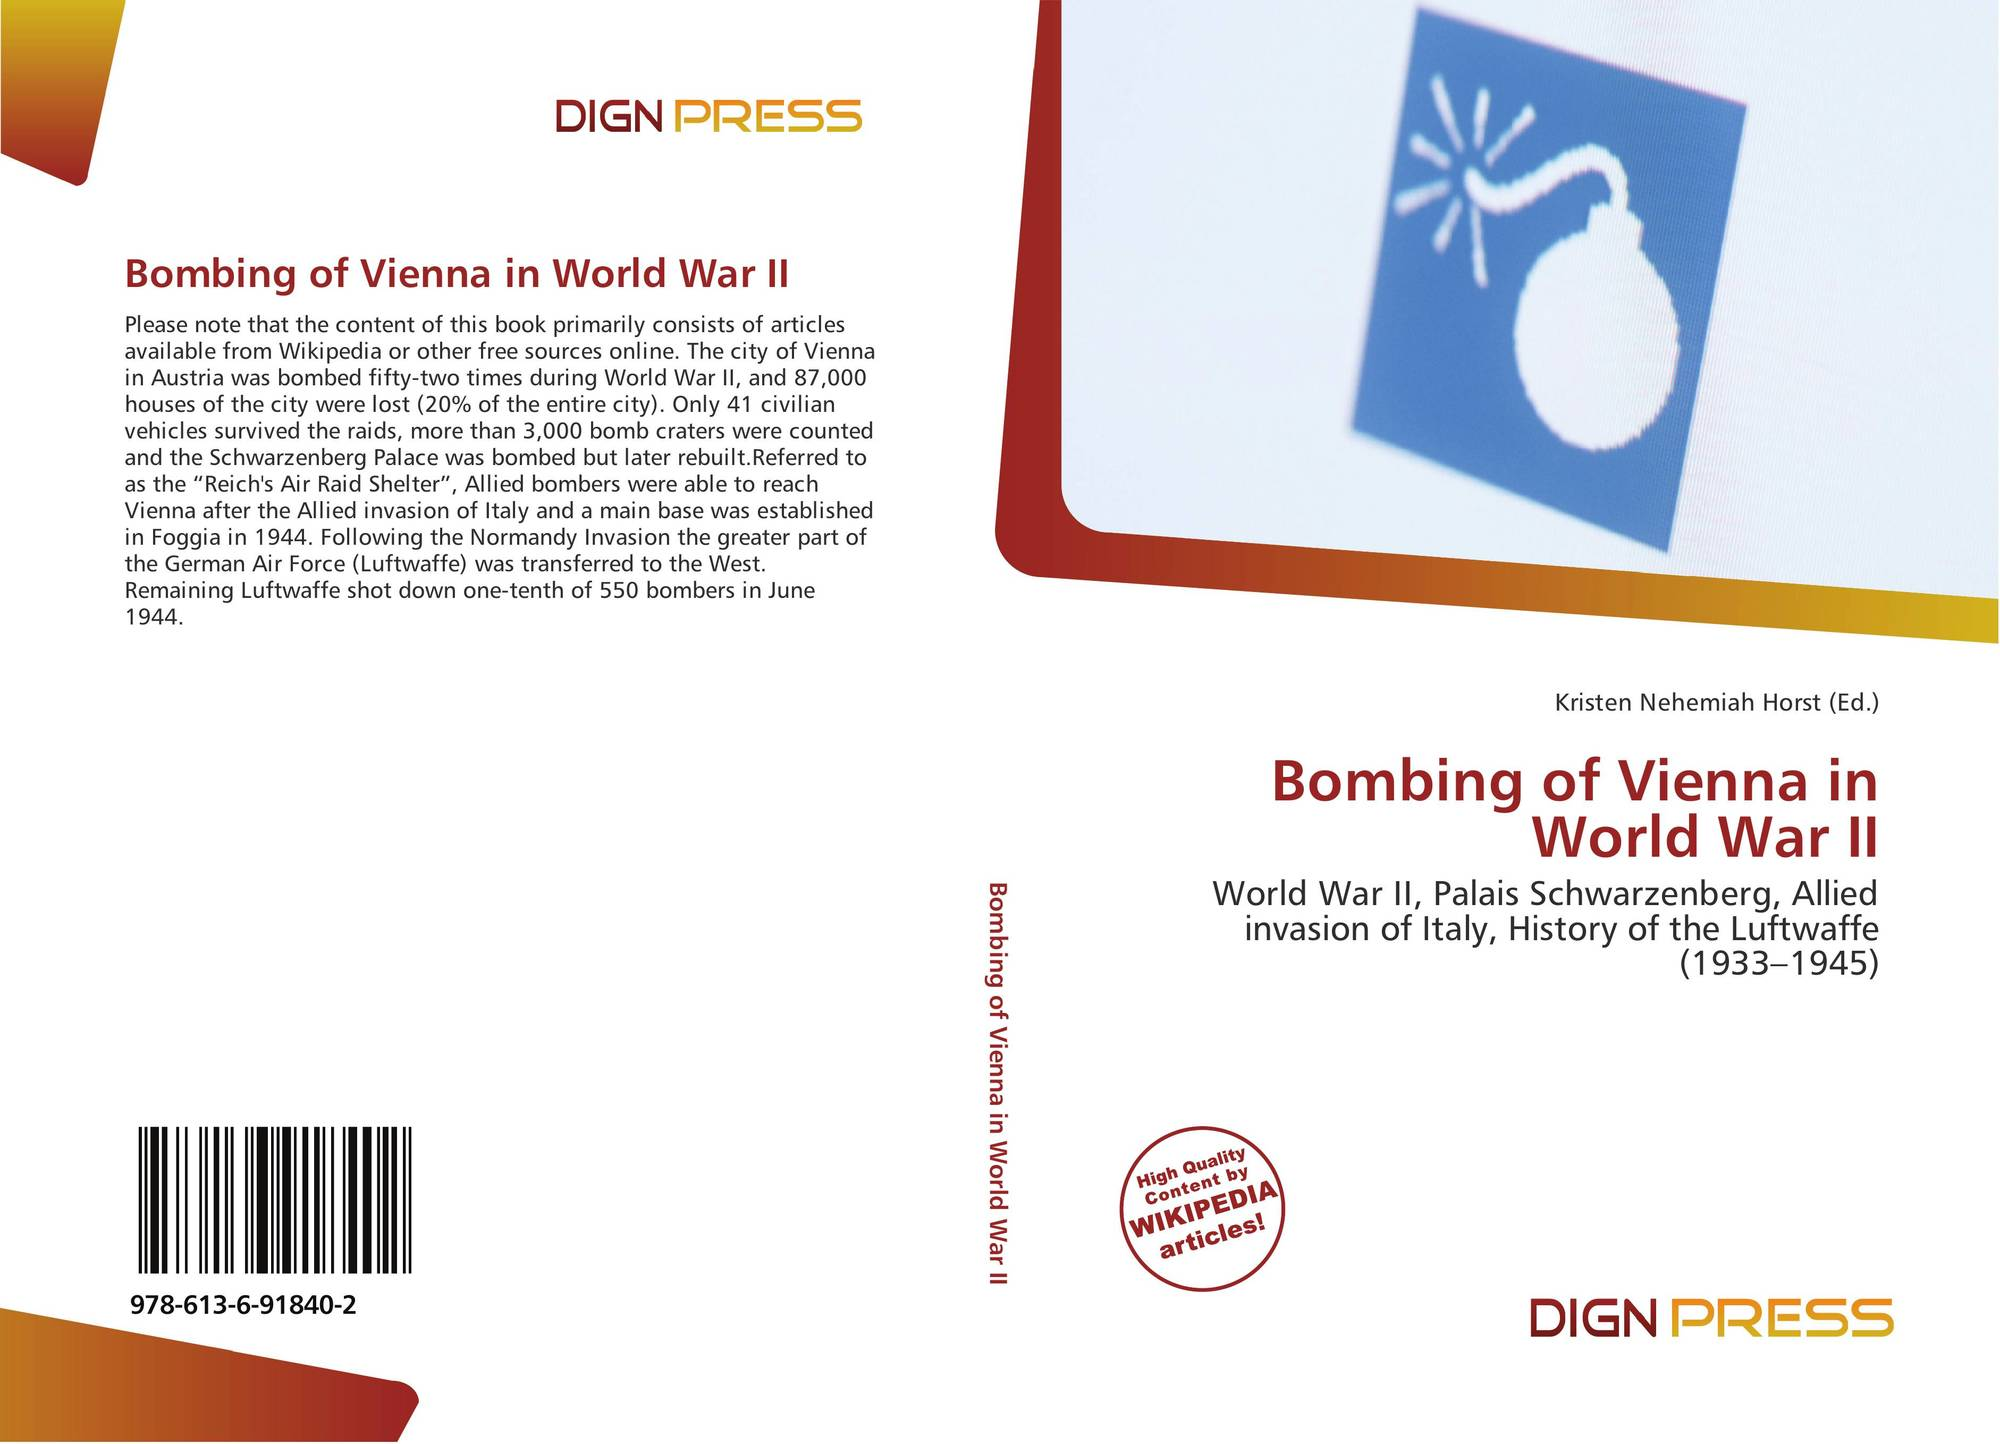 """an analysis of strategic bombings during world war ii The japanese suffered tremendous loss of life during world war two  cities,  japan's major urban centers were subjected to an extensive strategic bombing  campaign  the london blitz – from the german word """"blitzkrieg,"""" meaning """" lightning war"""" – is, for british citizens, at least, the scene of some of the."""